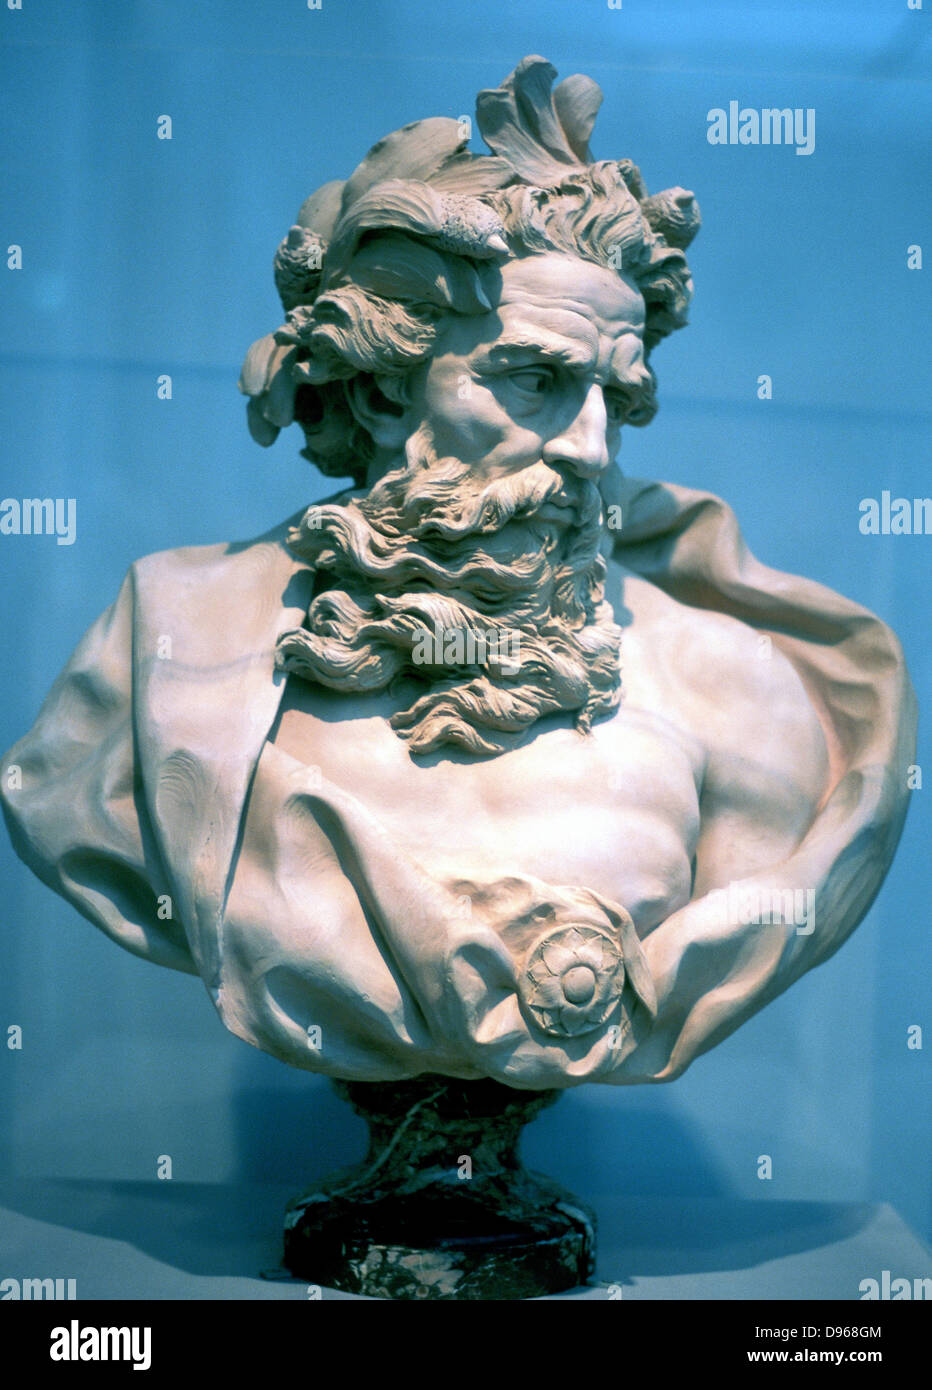 Neptune, god of the oceans. From an antique bust - Stock Image